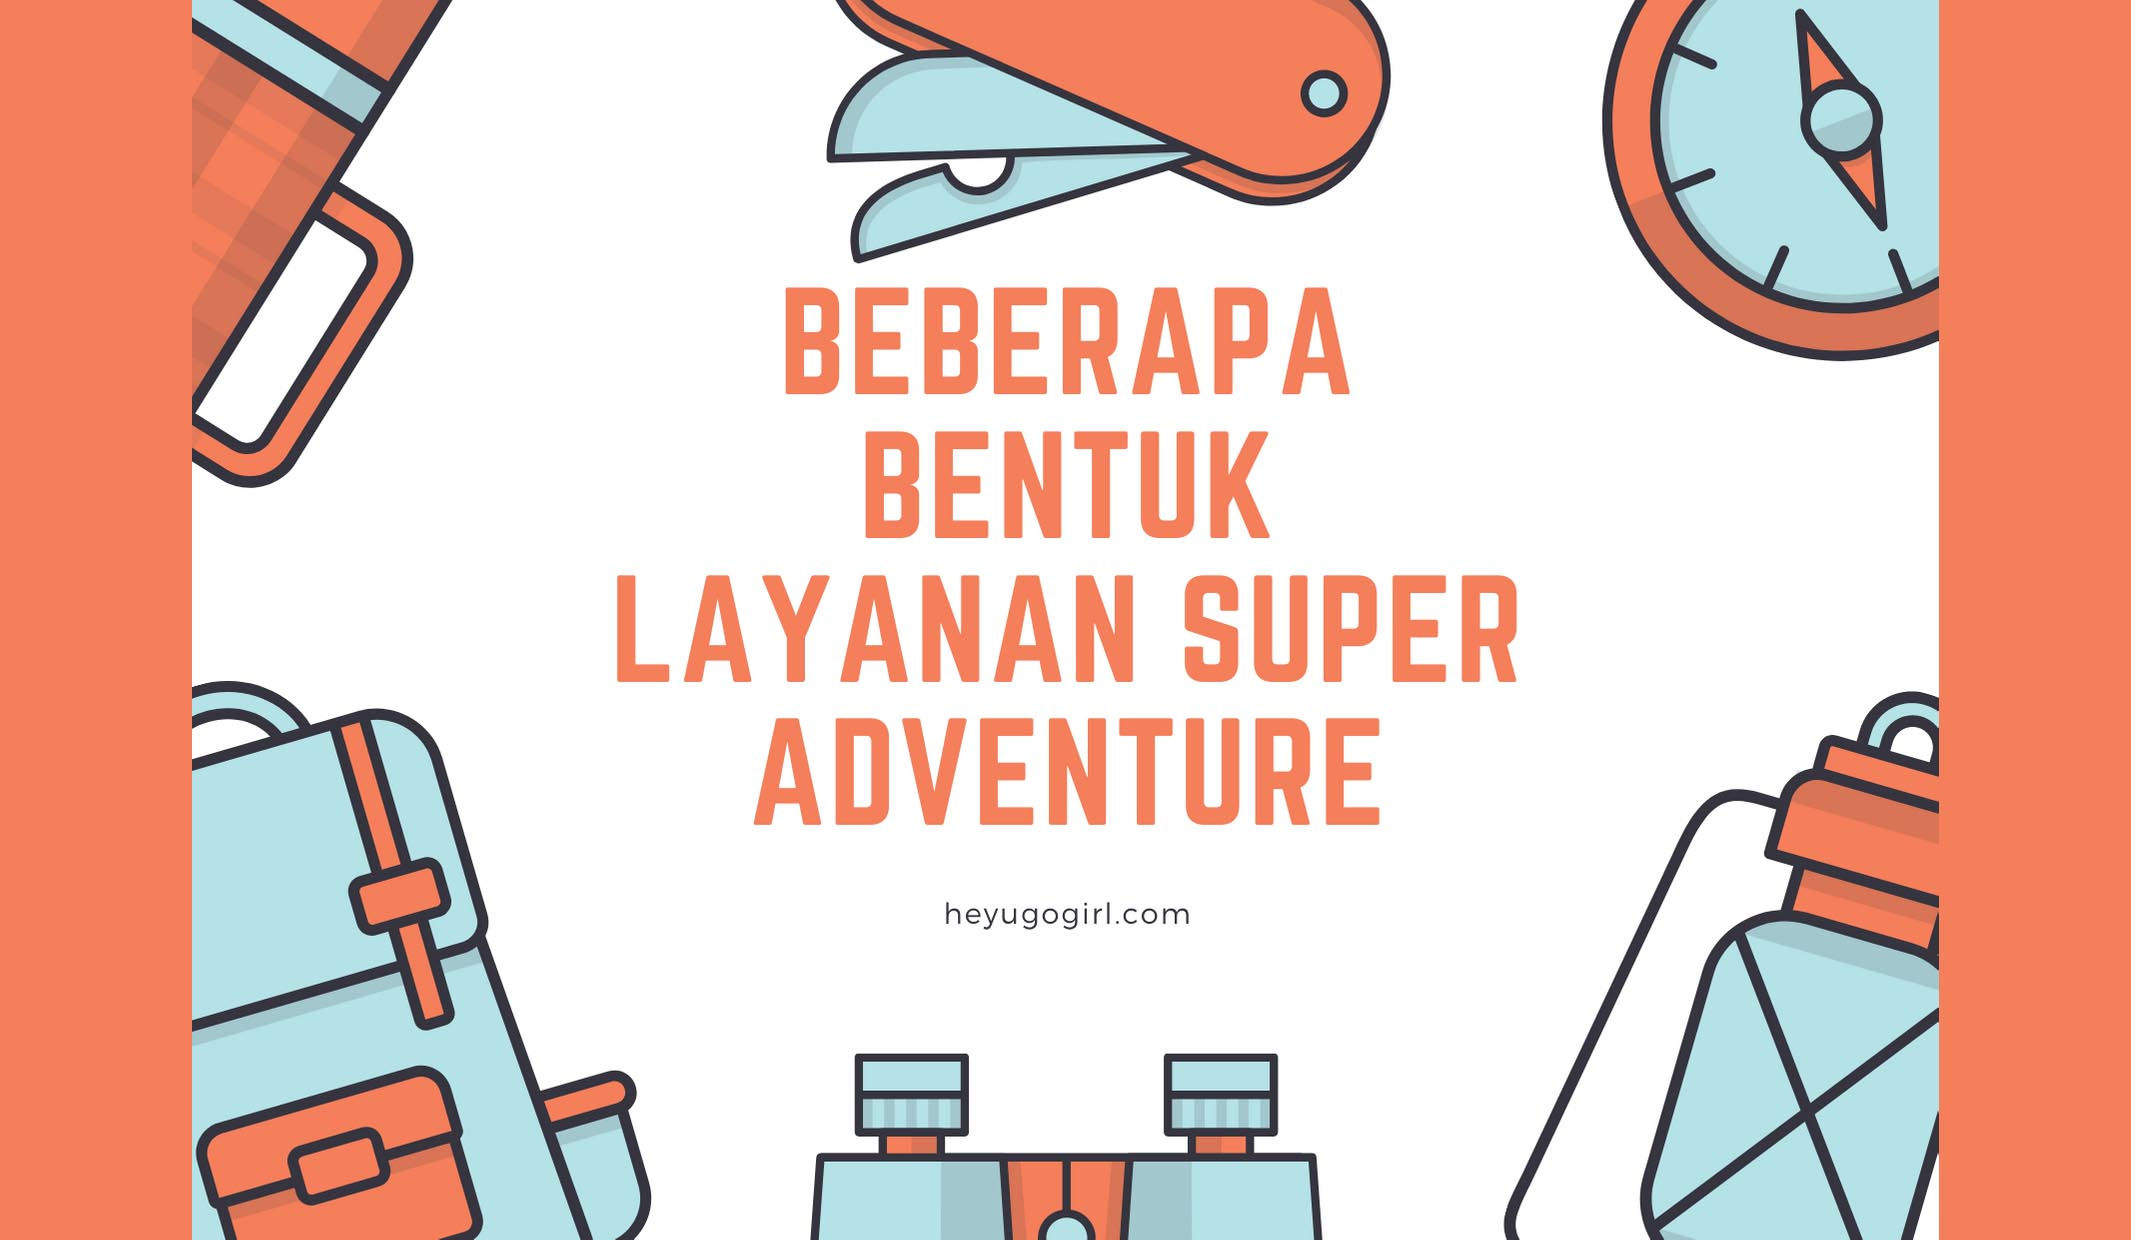 superadventure.co.id